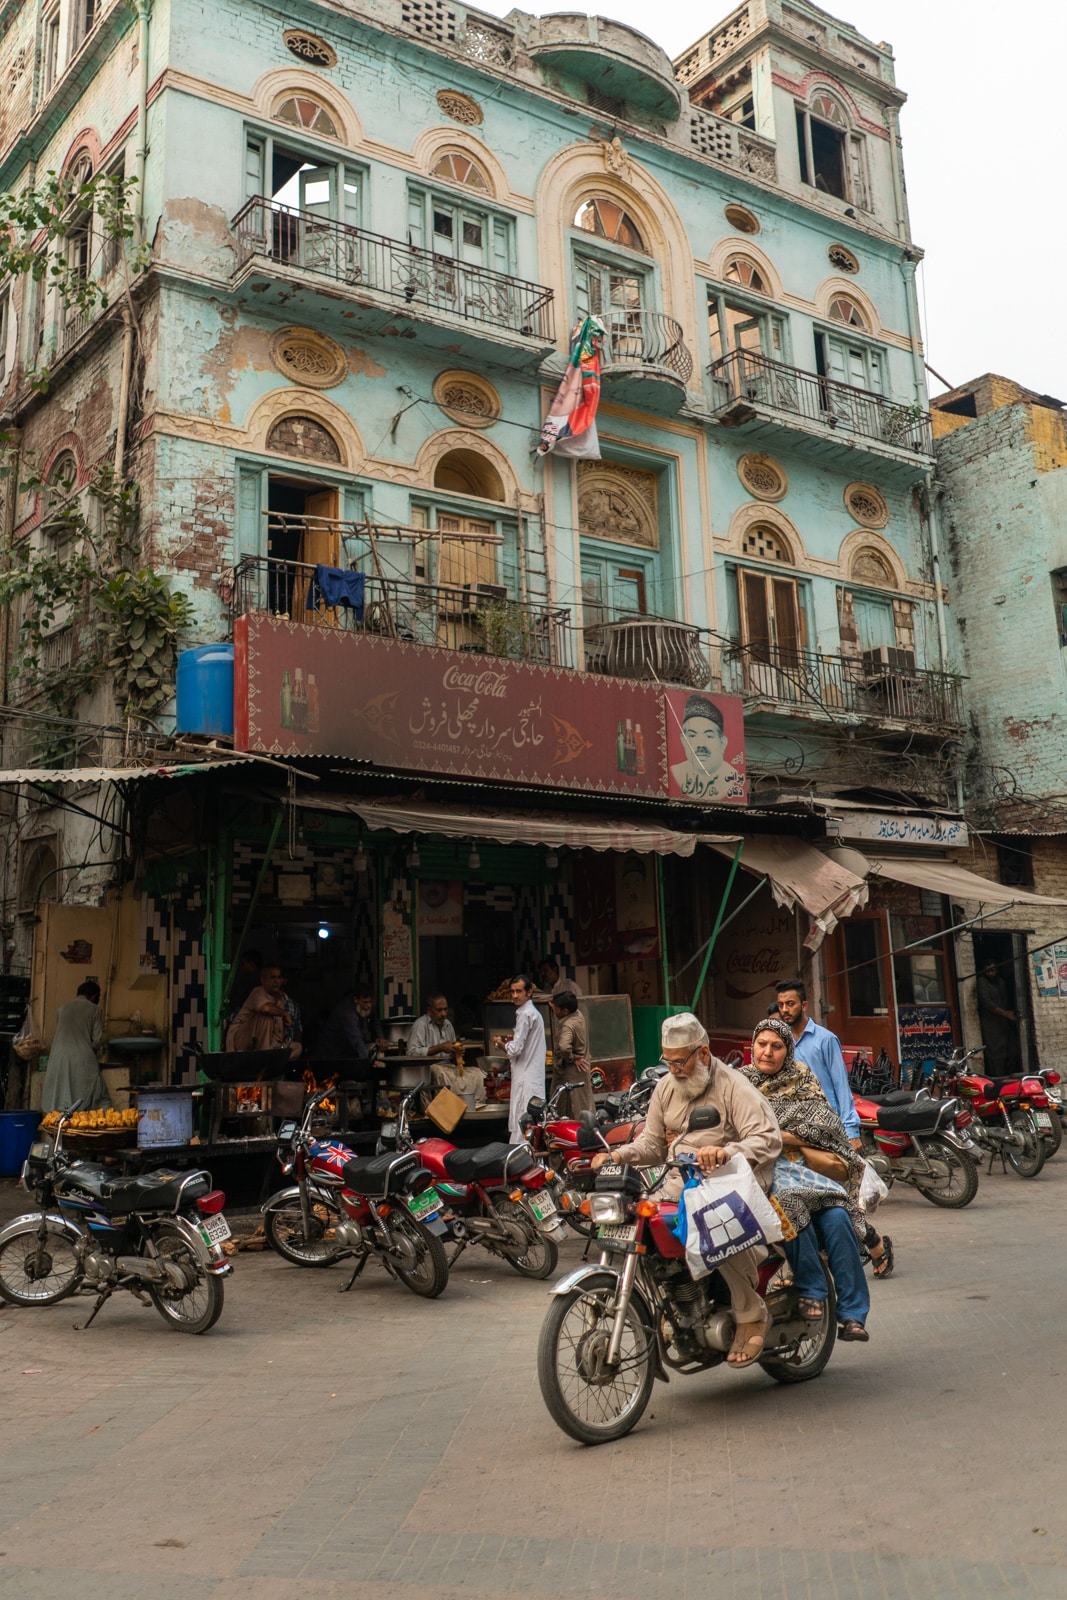 A couple driving a motorbike in front of a colorful building on Gawalmandi Food Street in Lahore, Pakistan